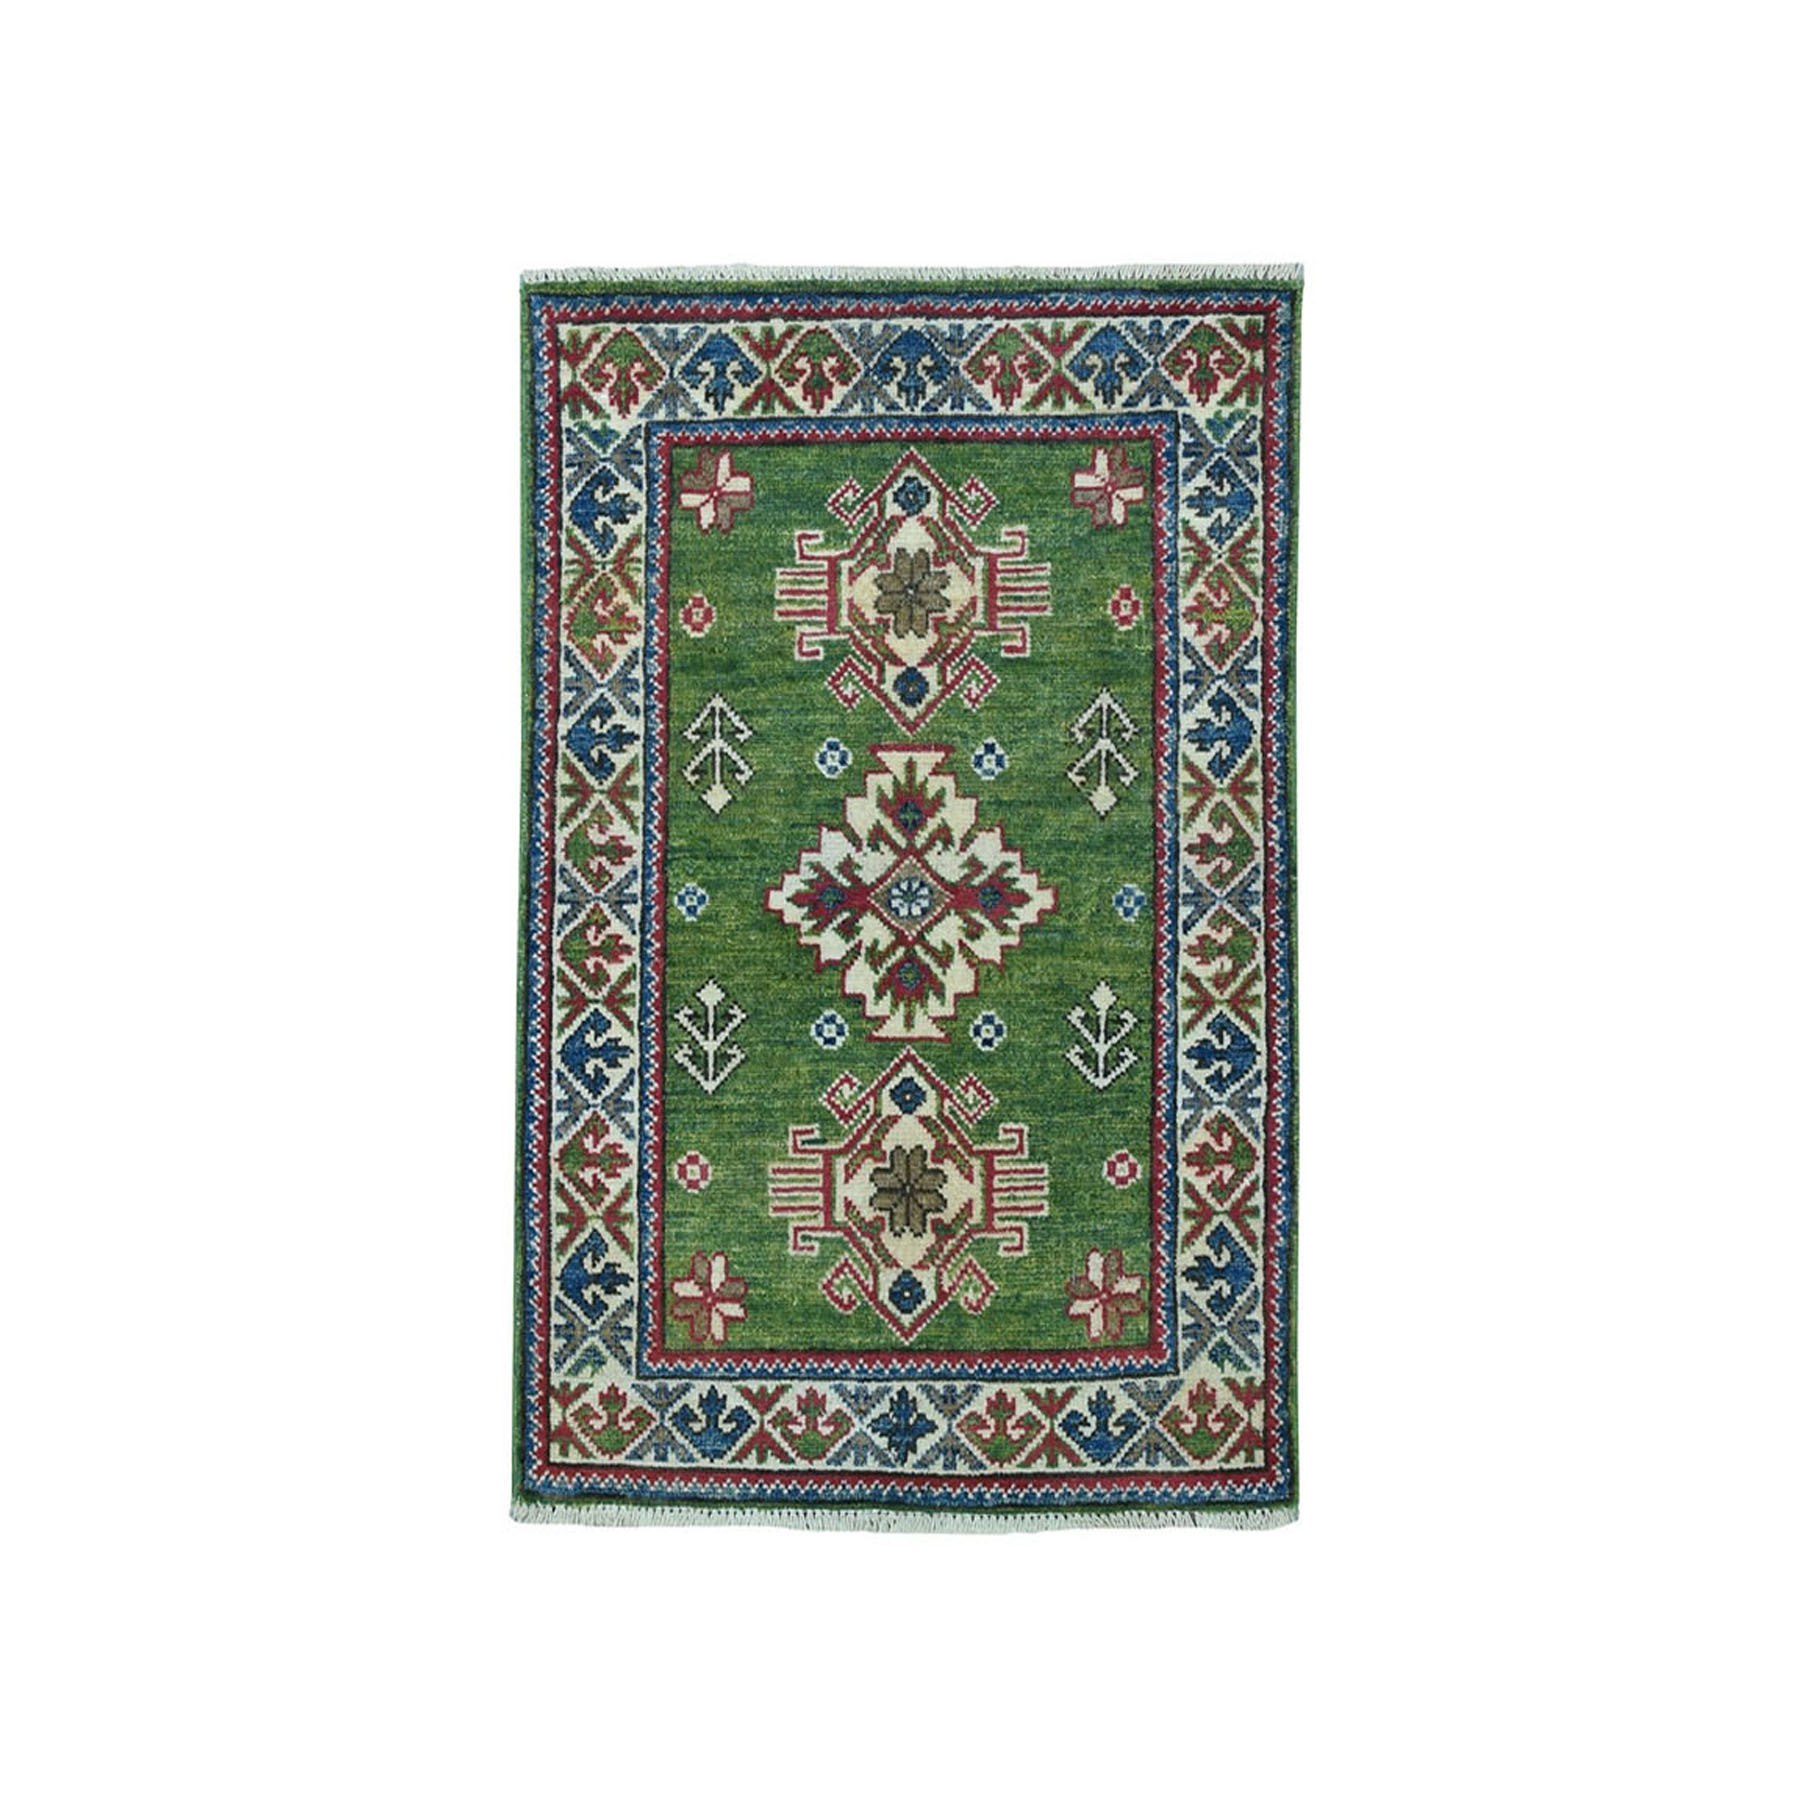 2'x3' Green Geometric Design Kazak Pure Wool Hand-Knotted Oriental Rug